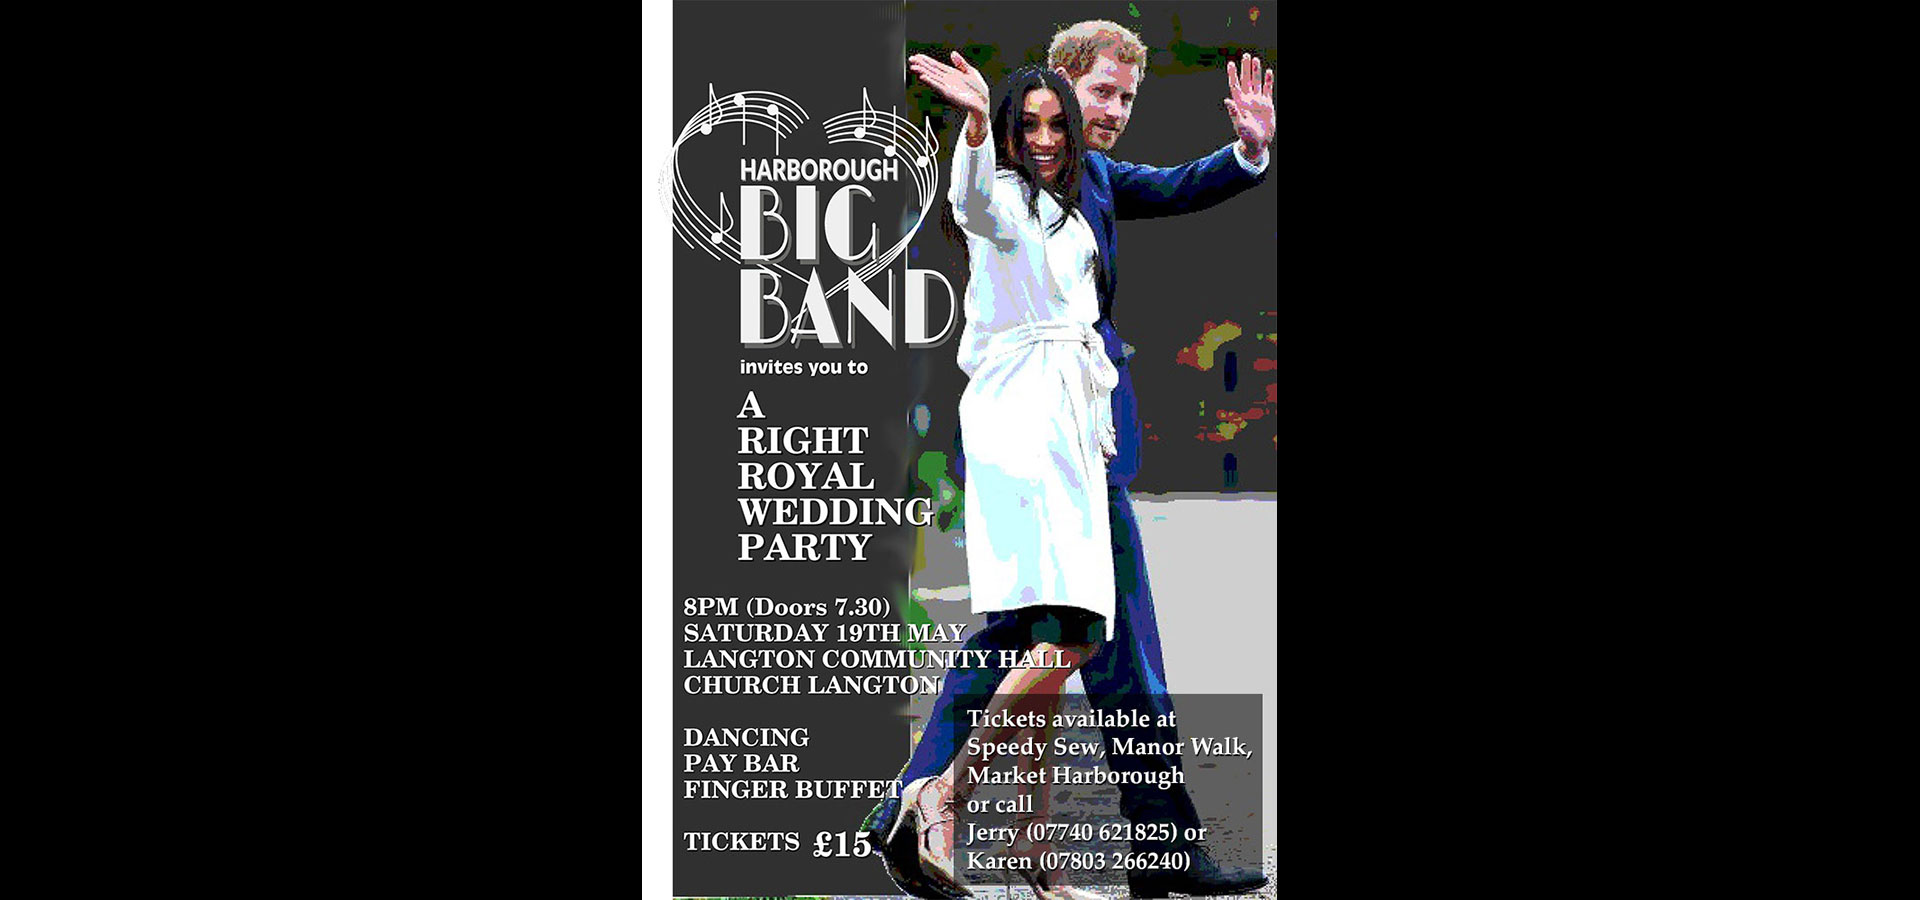 "Harborough Big Band: ""A Right Royal Wedding Party"" Saturday 19th May"